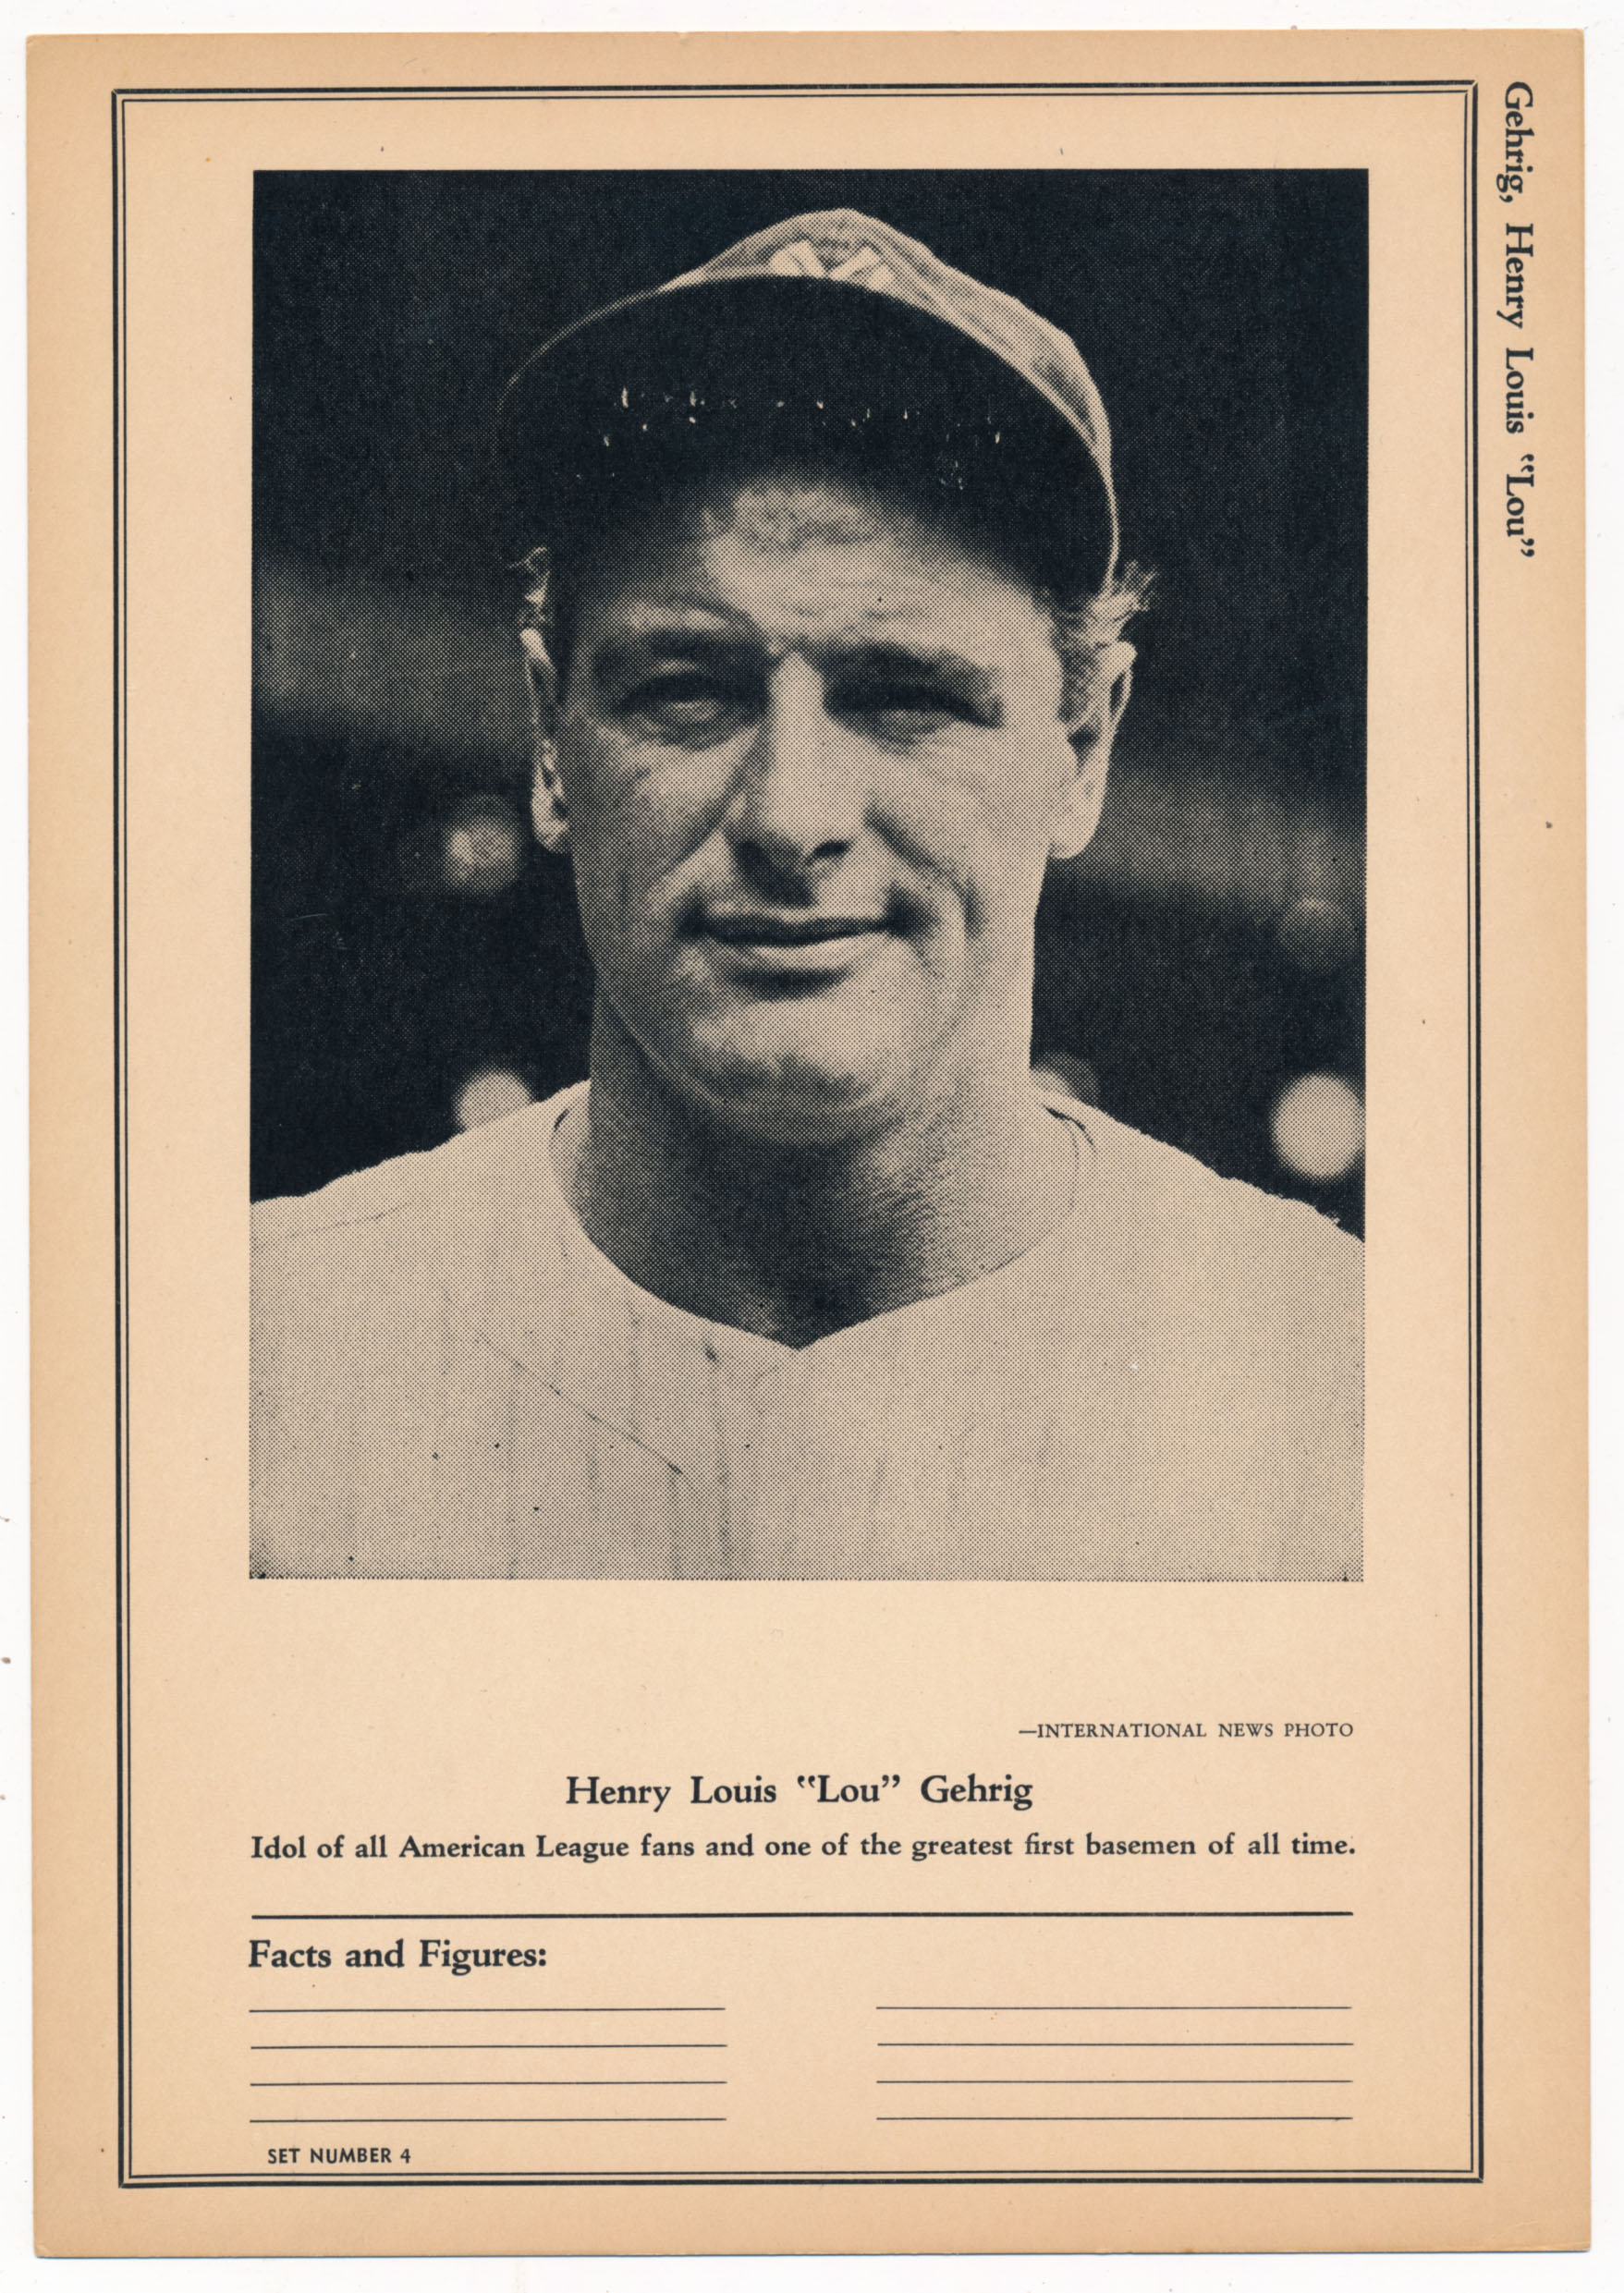 Lot #207 1946 Sports Exchange  Gehrig, Lou Cond: Ex-Mt+